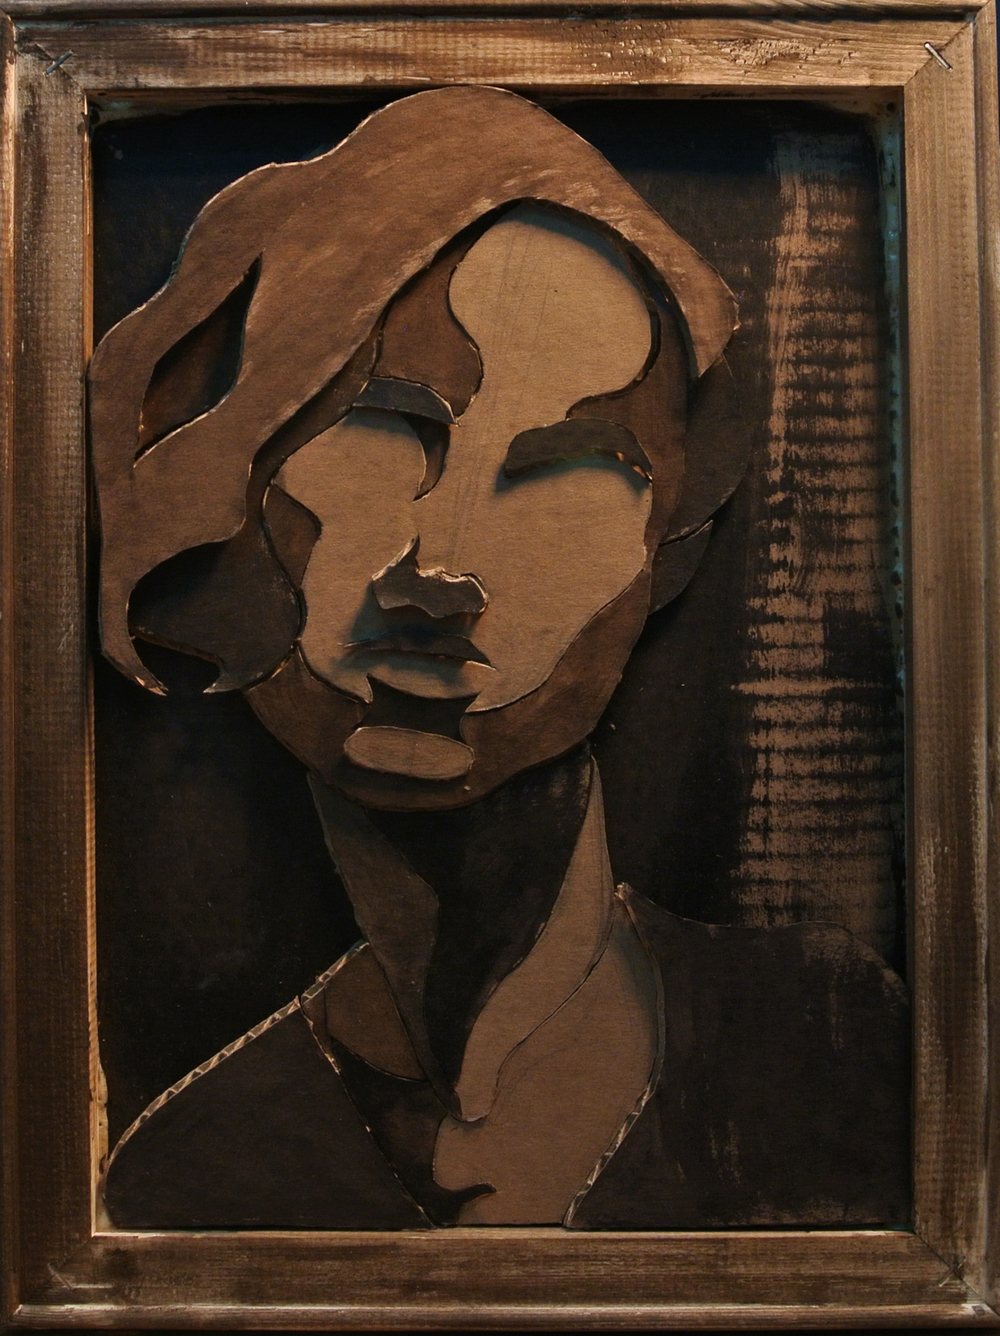 Sarah von Puttkammer, Self Portrait, Cardboard, wood, and acrylic paint, 16 x 12 inches